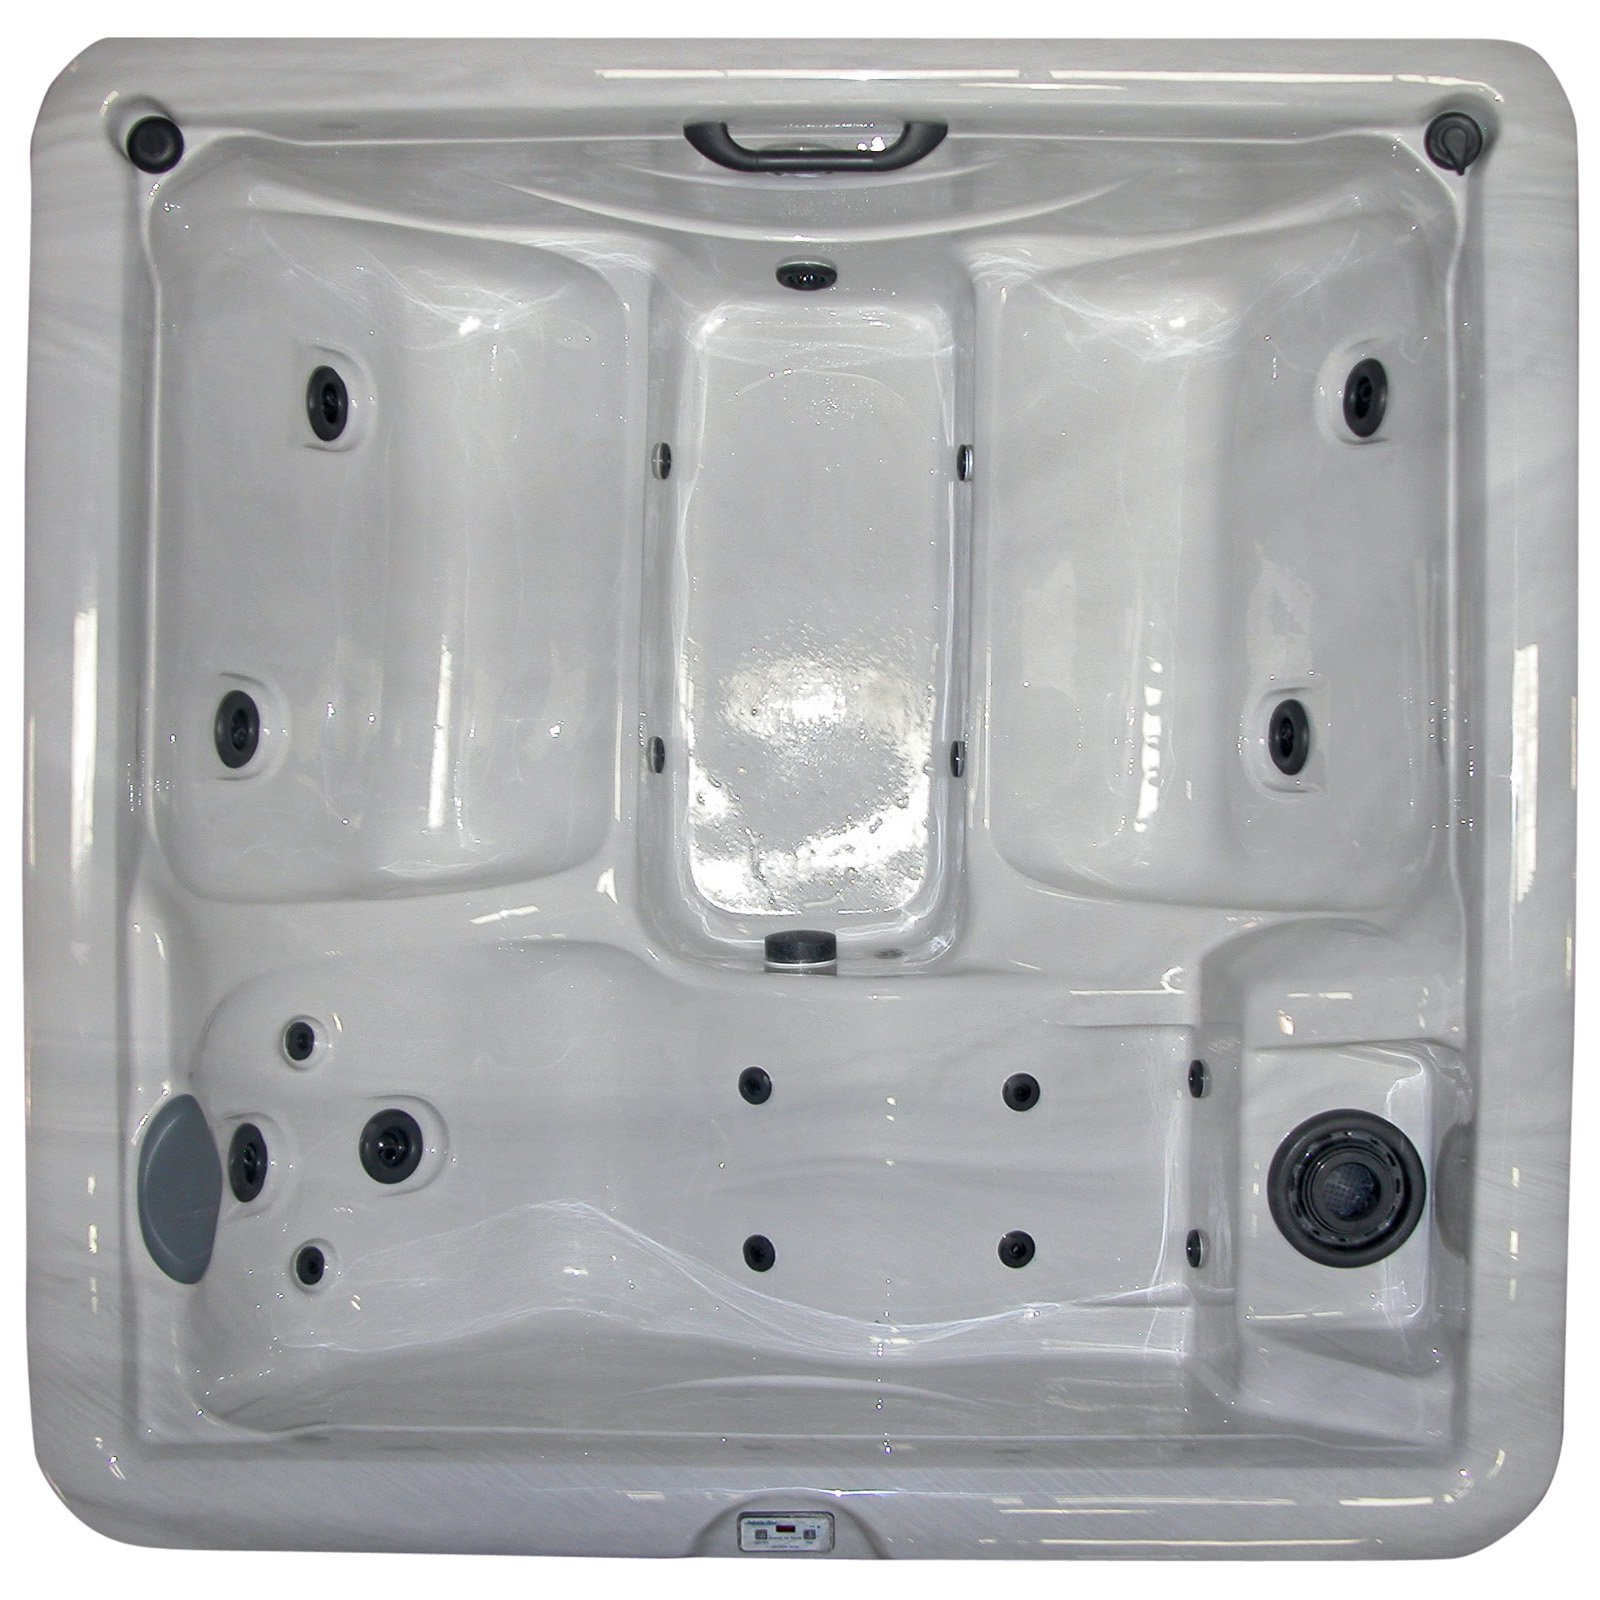 Beau Home And Garden Spas 5 Person 19 Jet Hot Tub